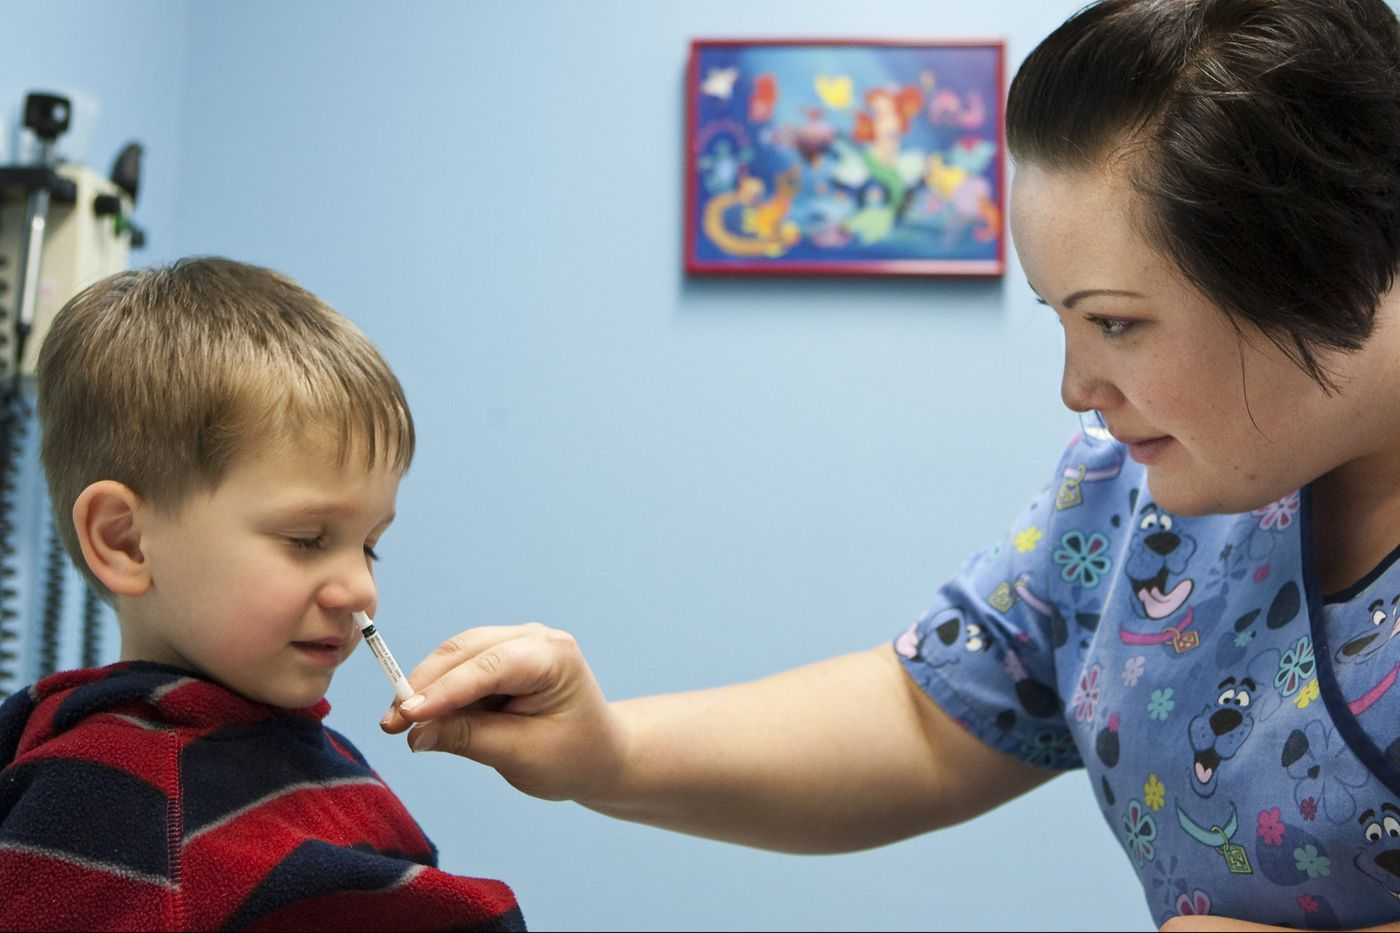 Which flu vaccine should kids get? CDC, AAP disagree